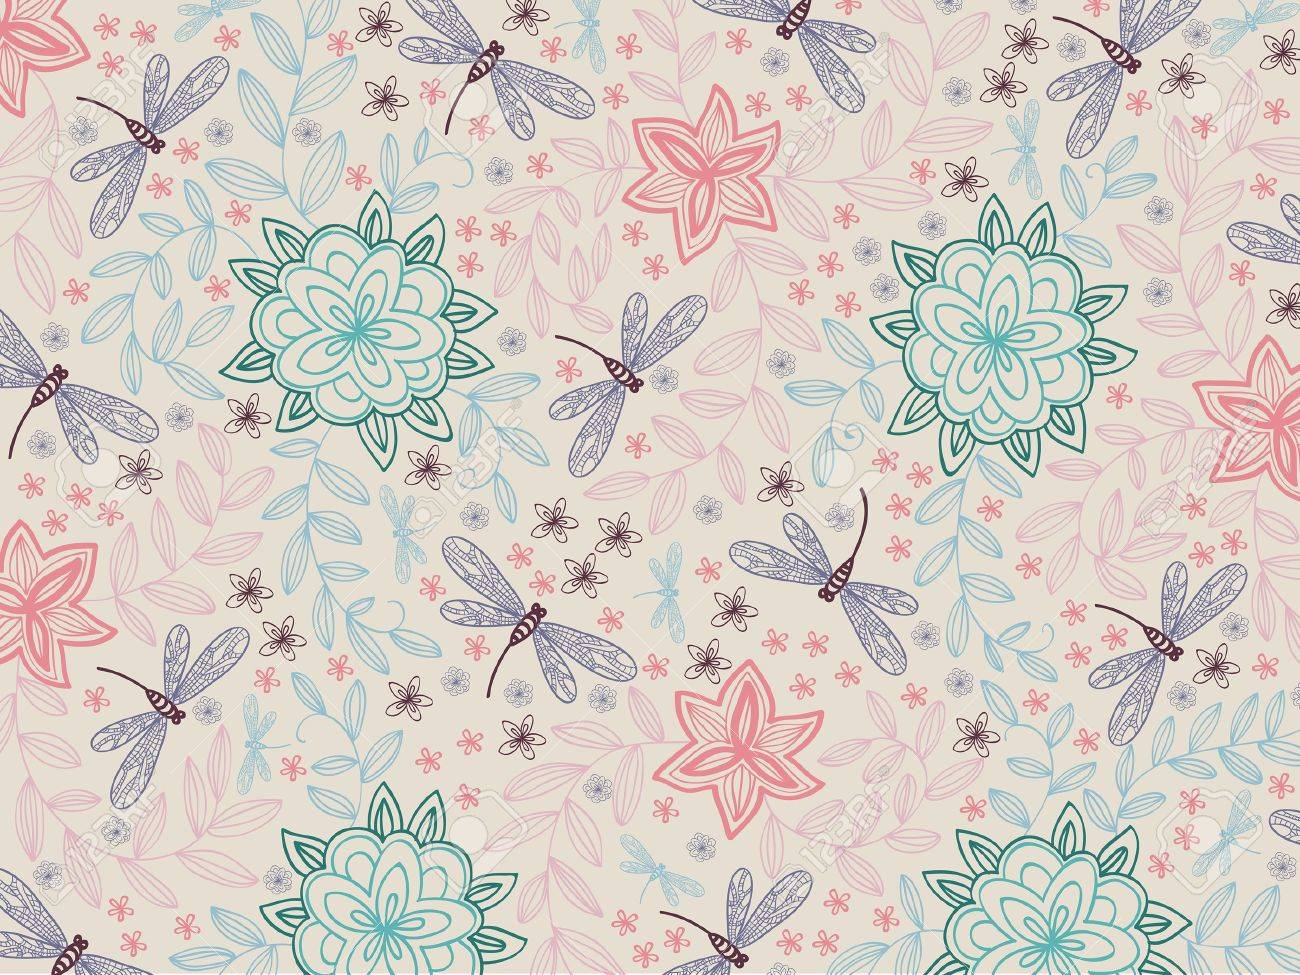 wallpaper with blossom flowers and dragonfly on a beige background Stock Vector - 10425784